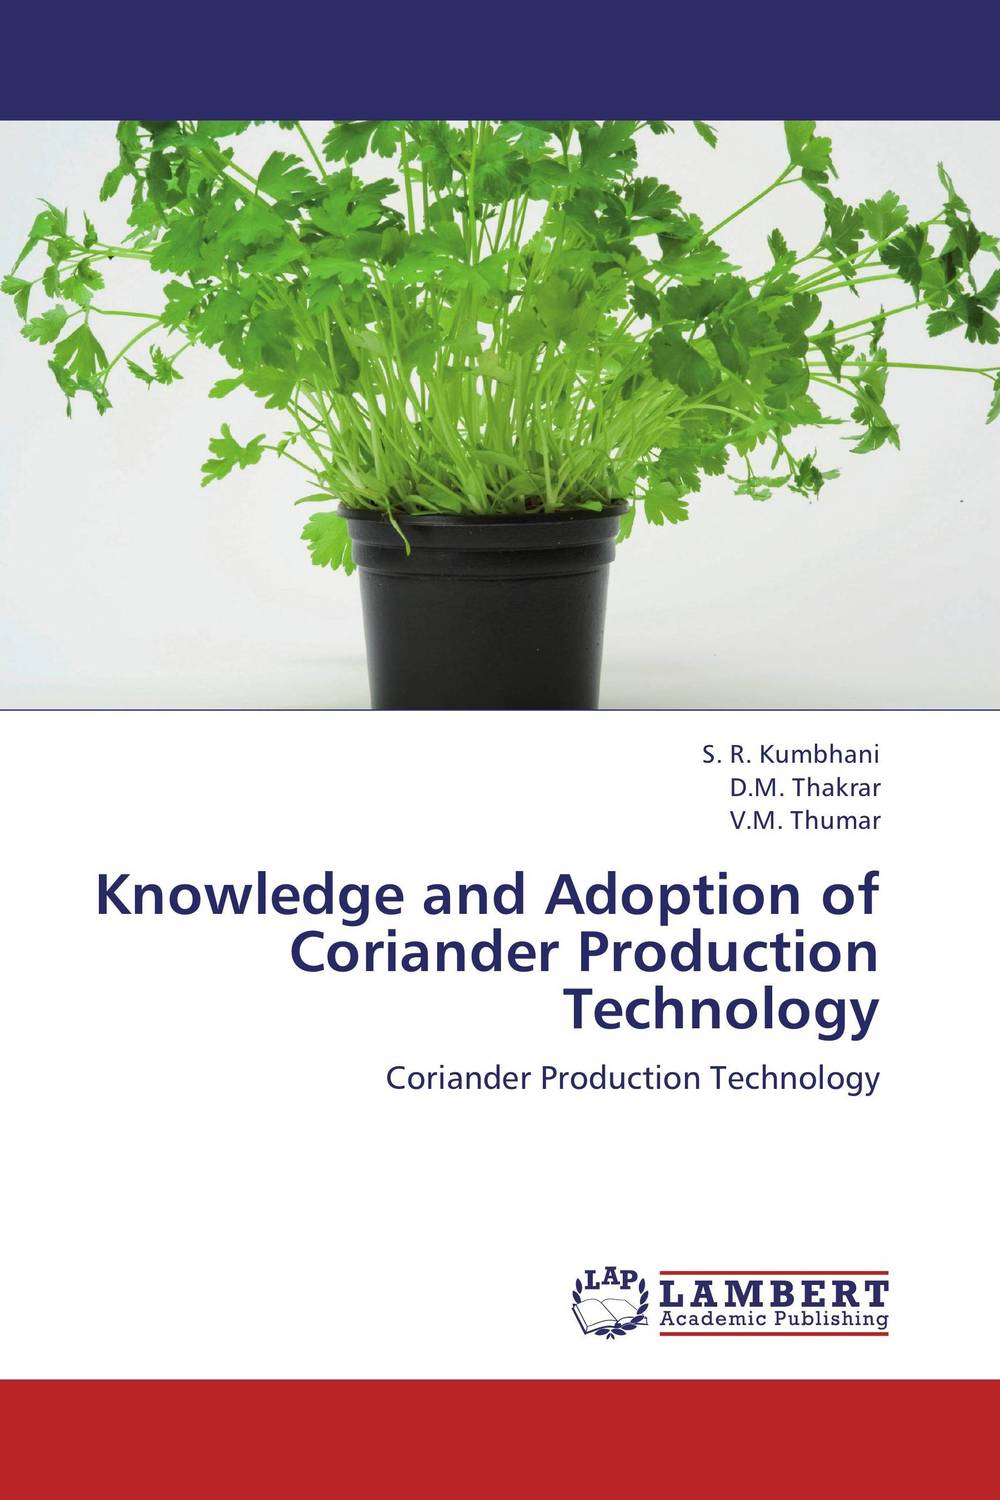 Knowledge and Adoption of Coriander Production Technology gary beach j the u s technology skills gap what every technology executive must know to save america s future